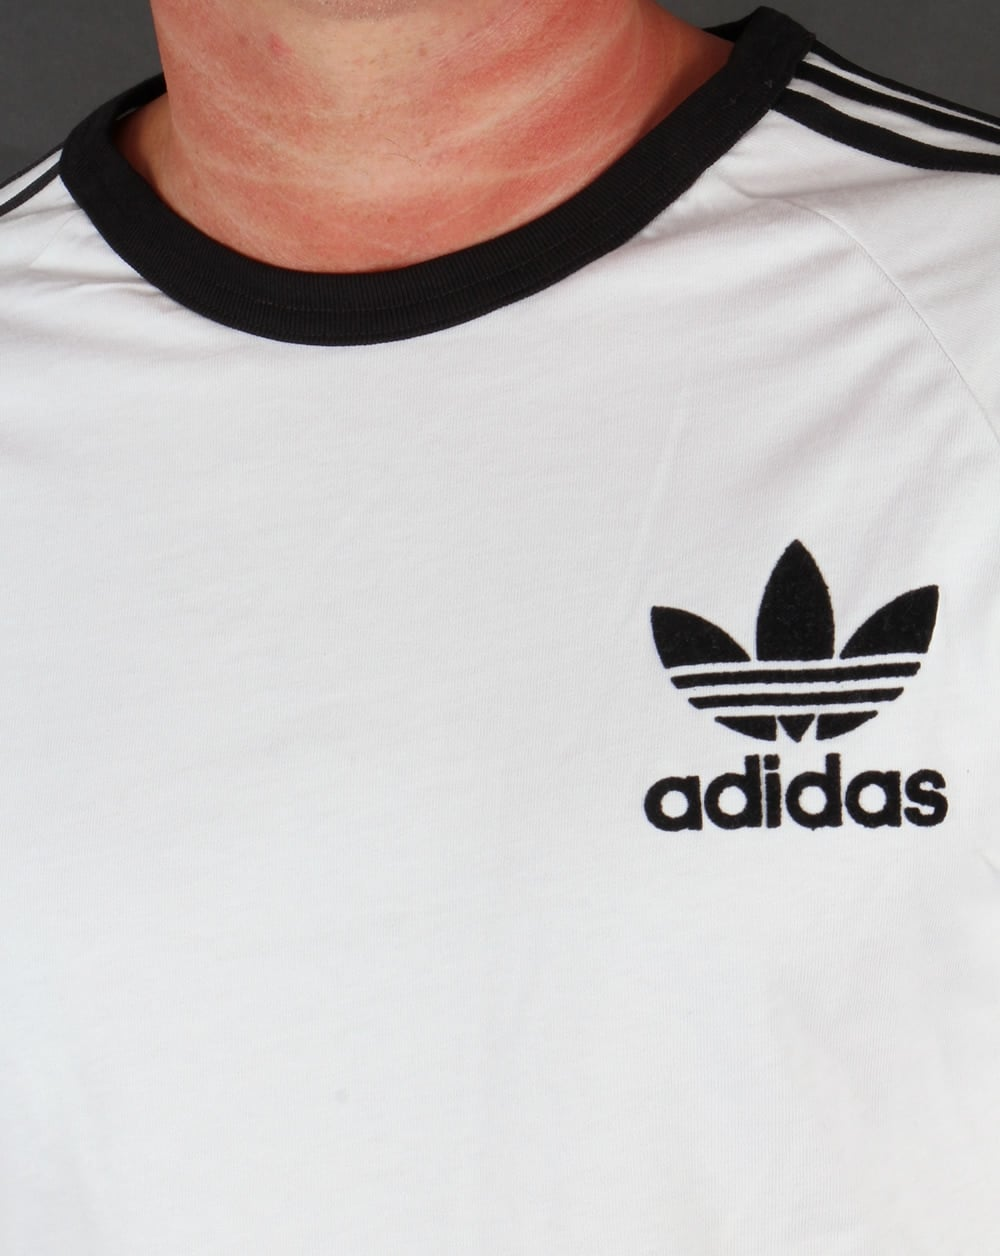 Adidas t shirt black white - Adidas Originals 3 Stripes Oversized Long Sleeve T Shirt White Black